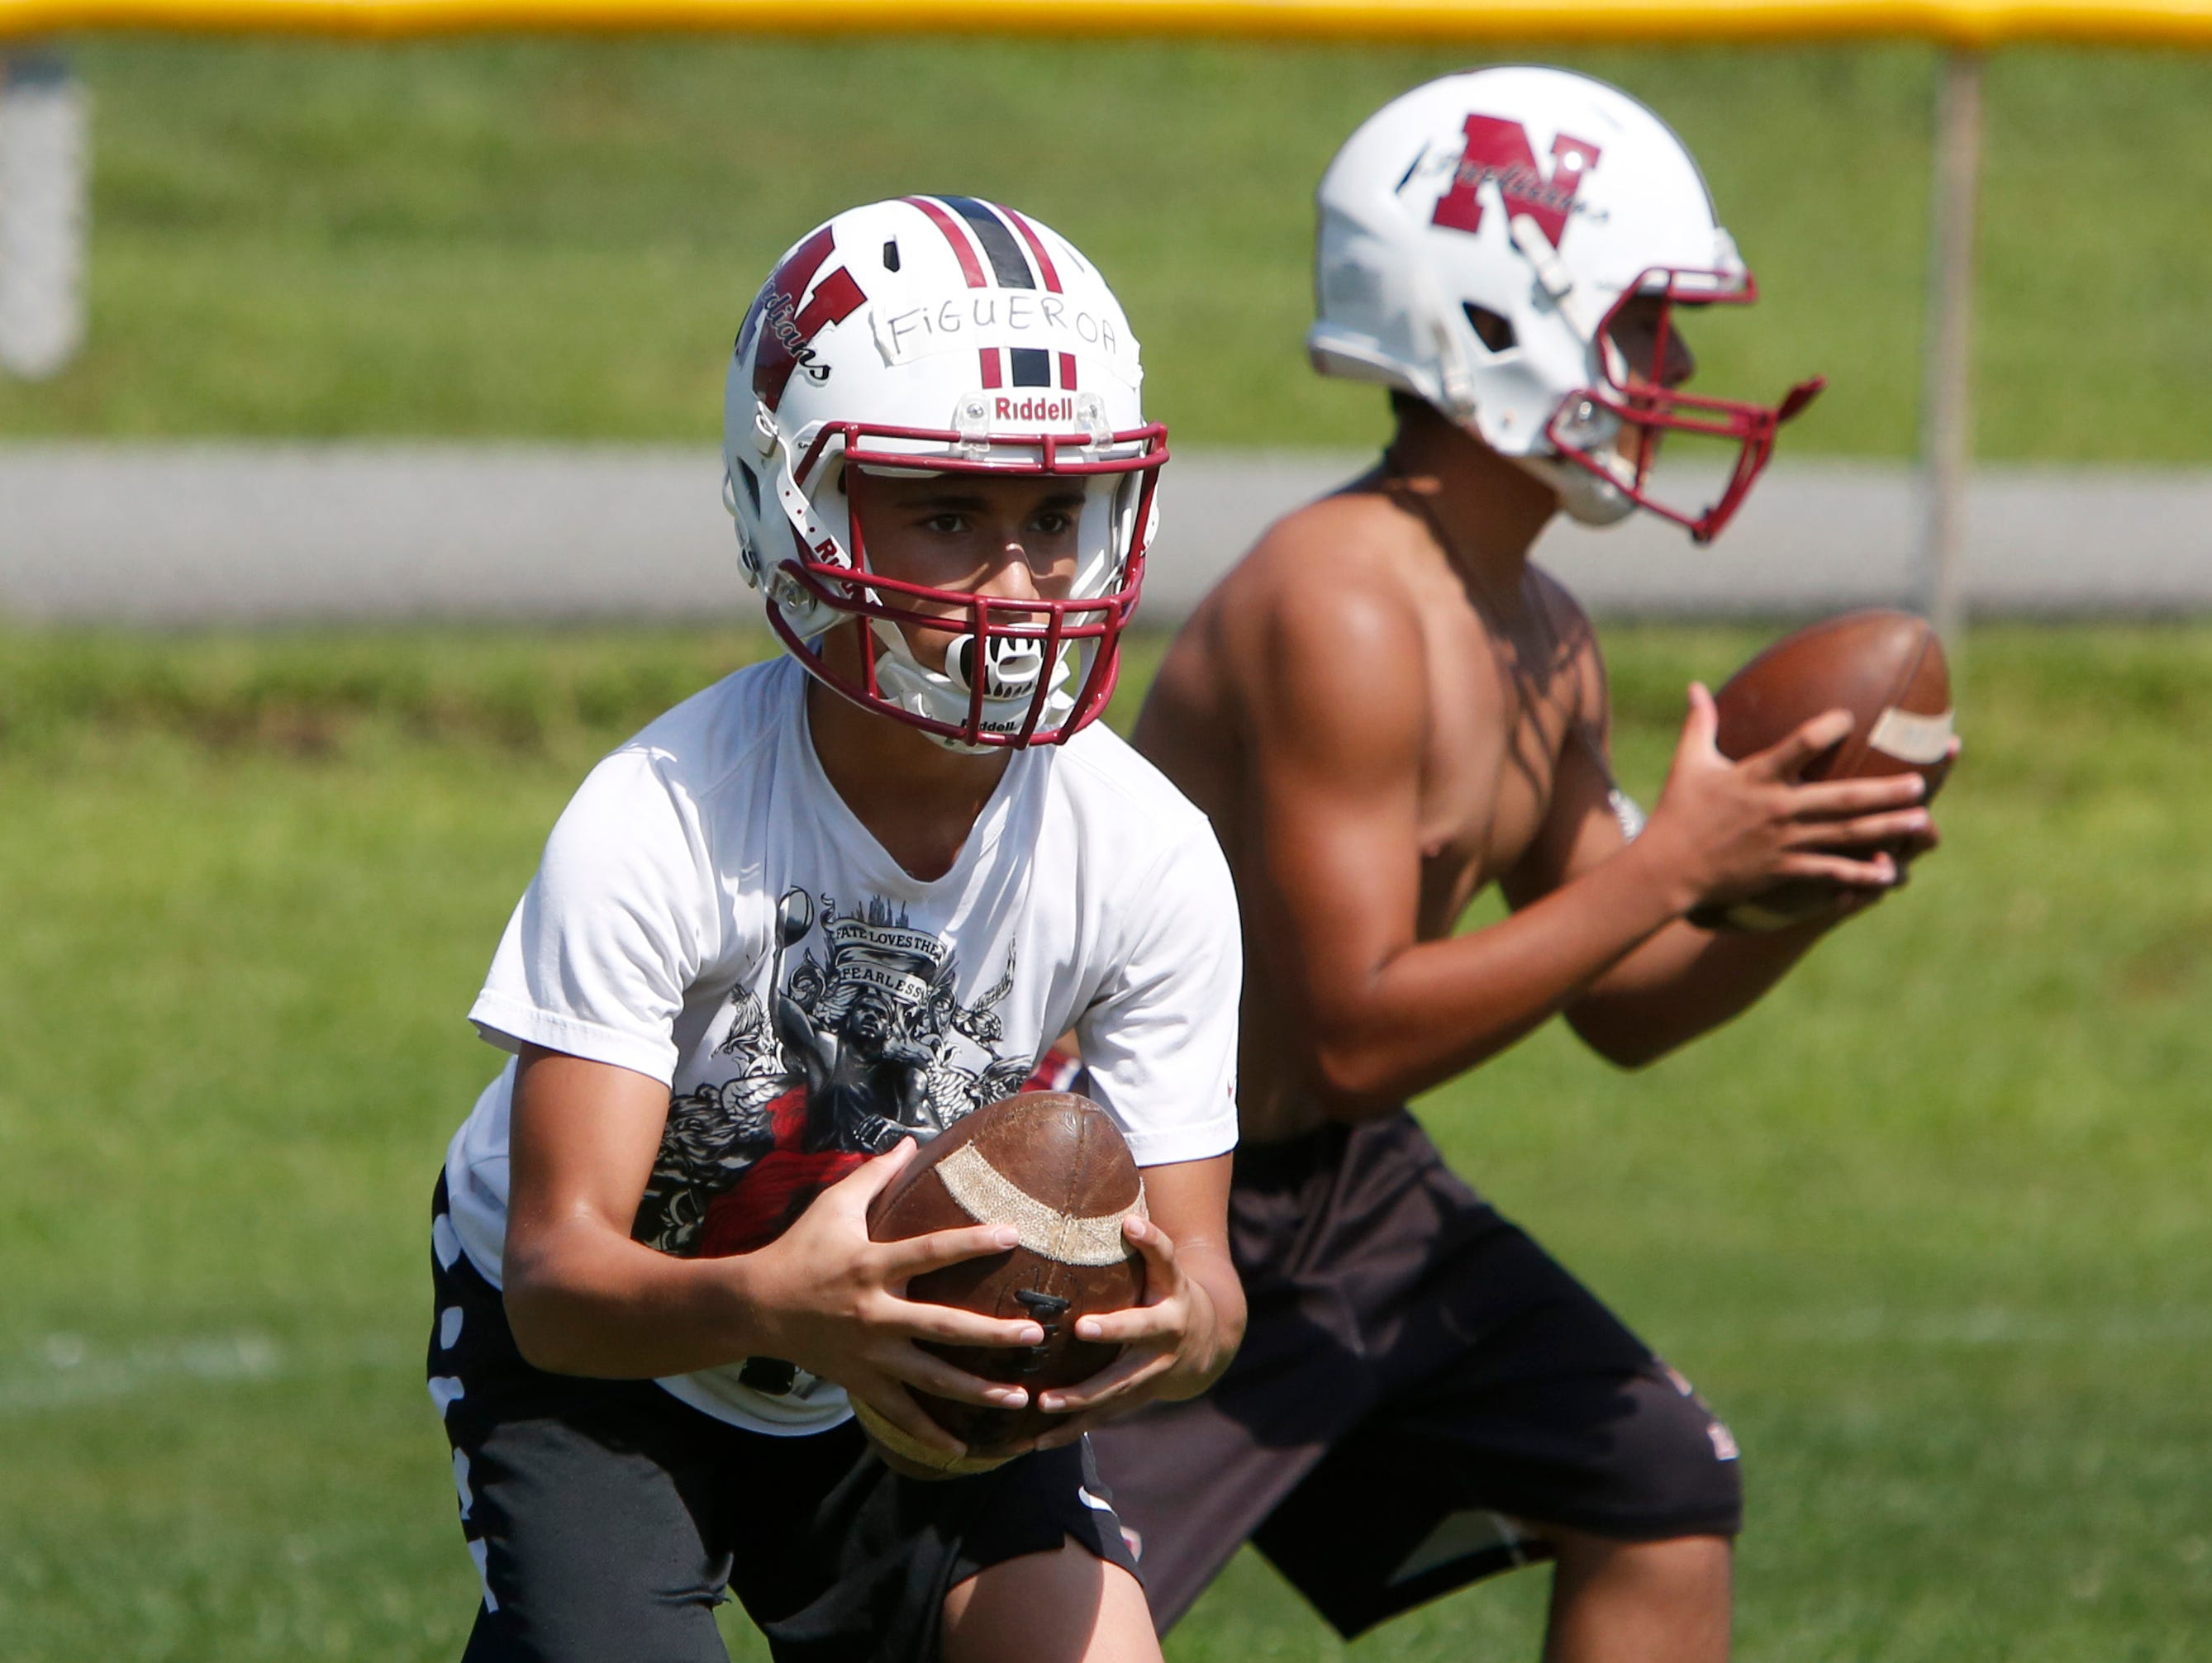 Nyack High School players work on passing during the first day of football practice Aug. 15, 2016 at Nyack Middle School.